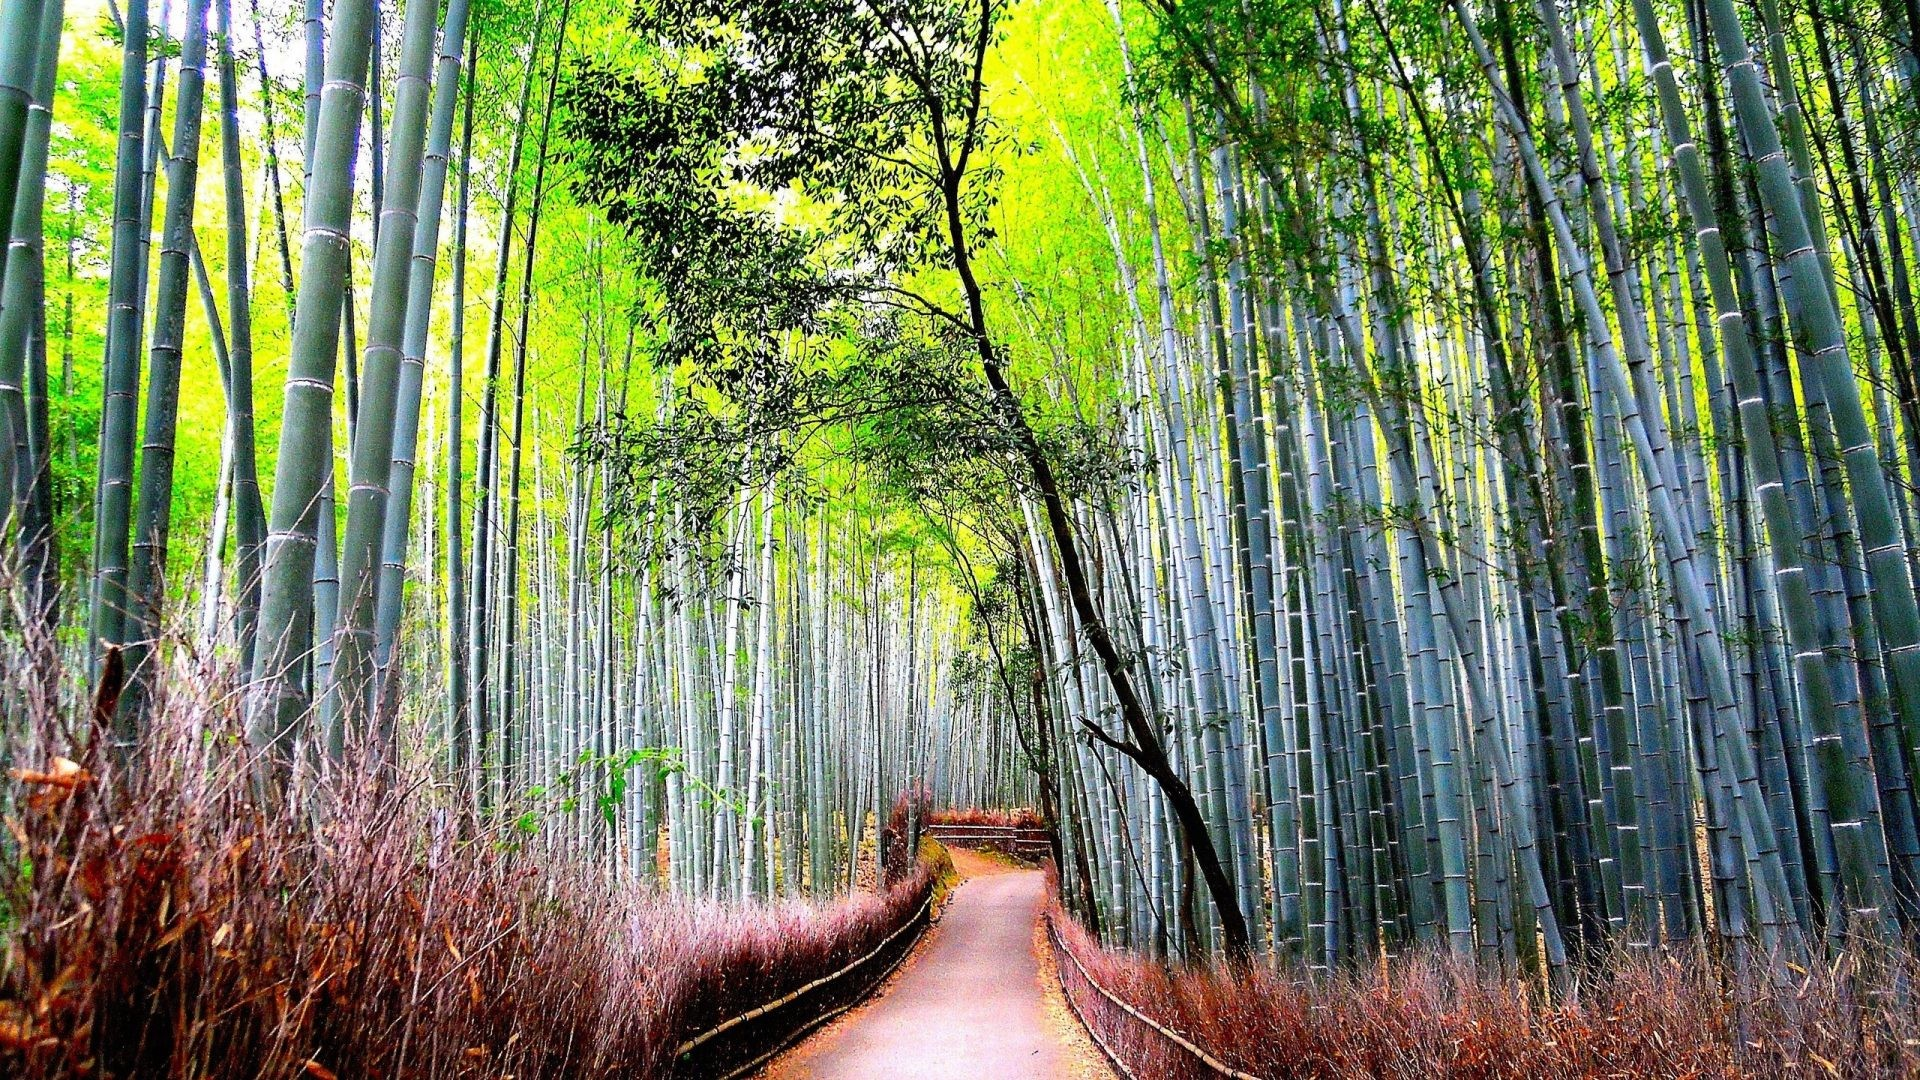 1920x1080 Bamboo Tag - Nature Forest Bamboo Road Beautiful Hd Desktop Wallpaper for  HD 16:9